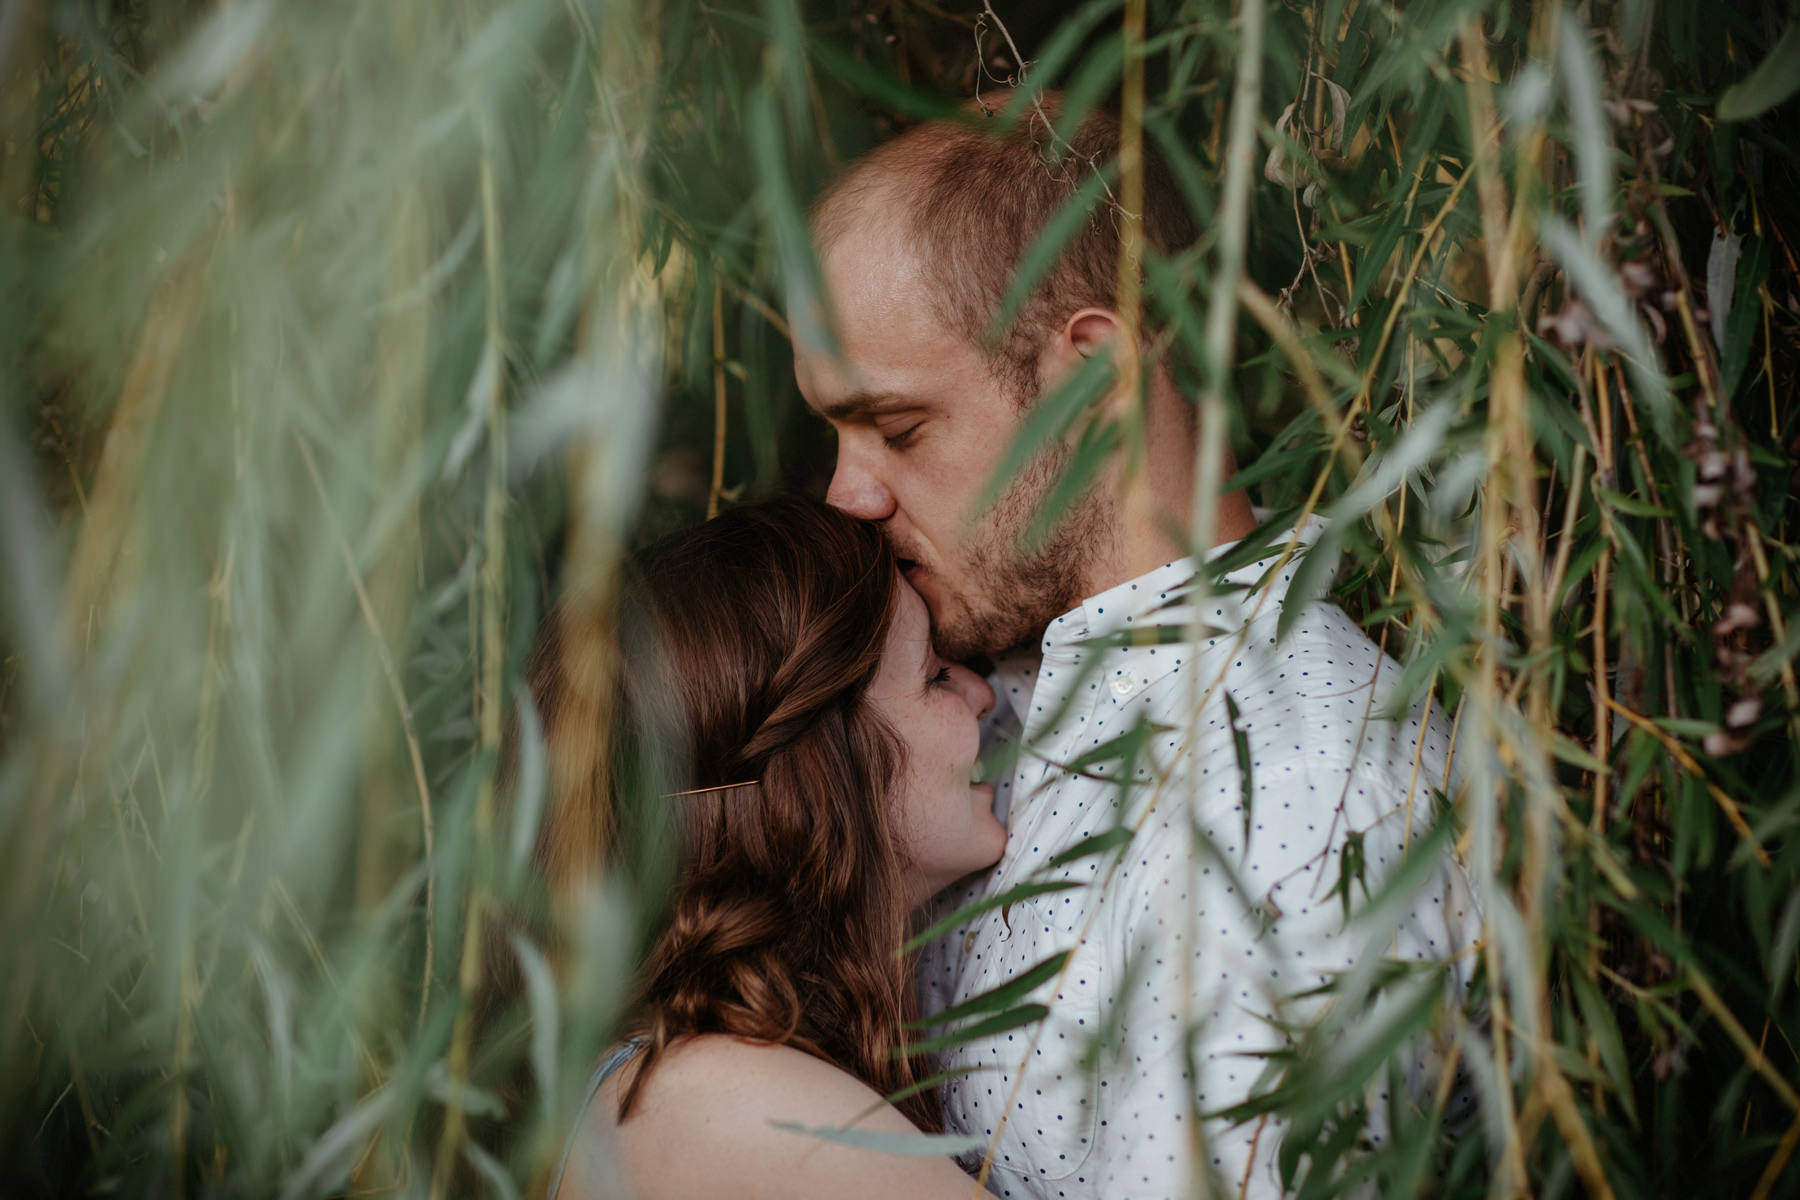 97_Penn Valley Park Engagement Session Kansas City, Missouri_Kindling Wedding Photography.JPG